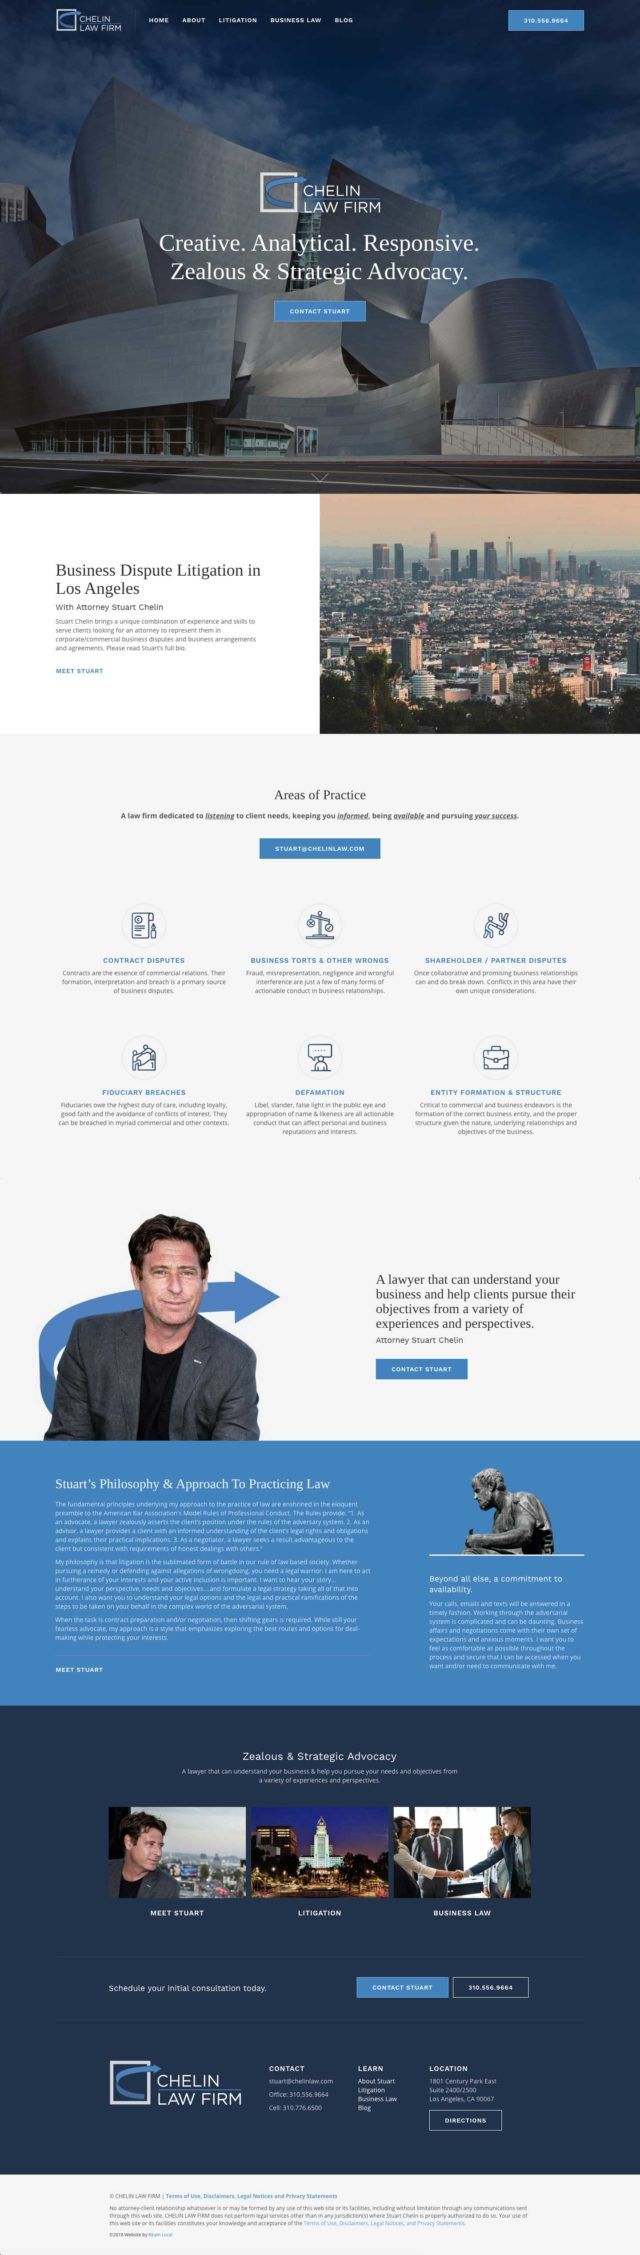 The Best Lawyer Website Designs for 2019 | Beam Local